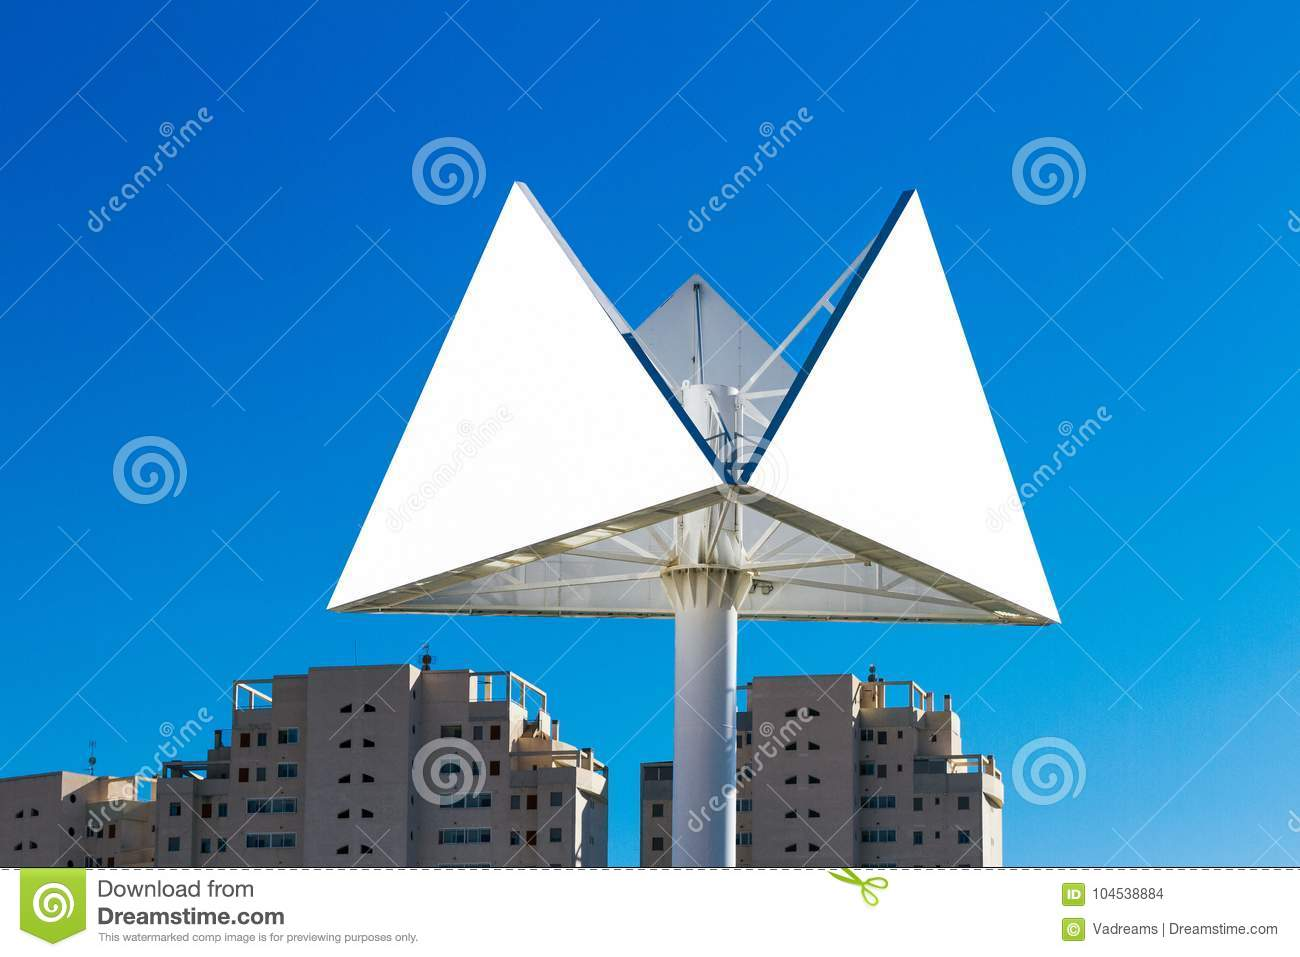 Triangle billboard or advertising poster with city and blue sky background